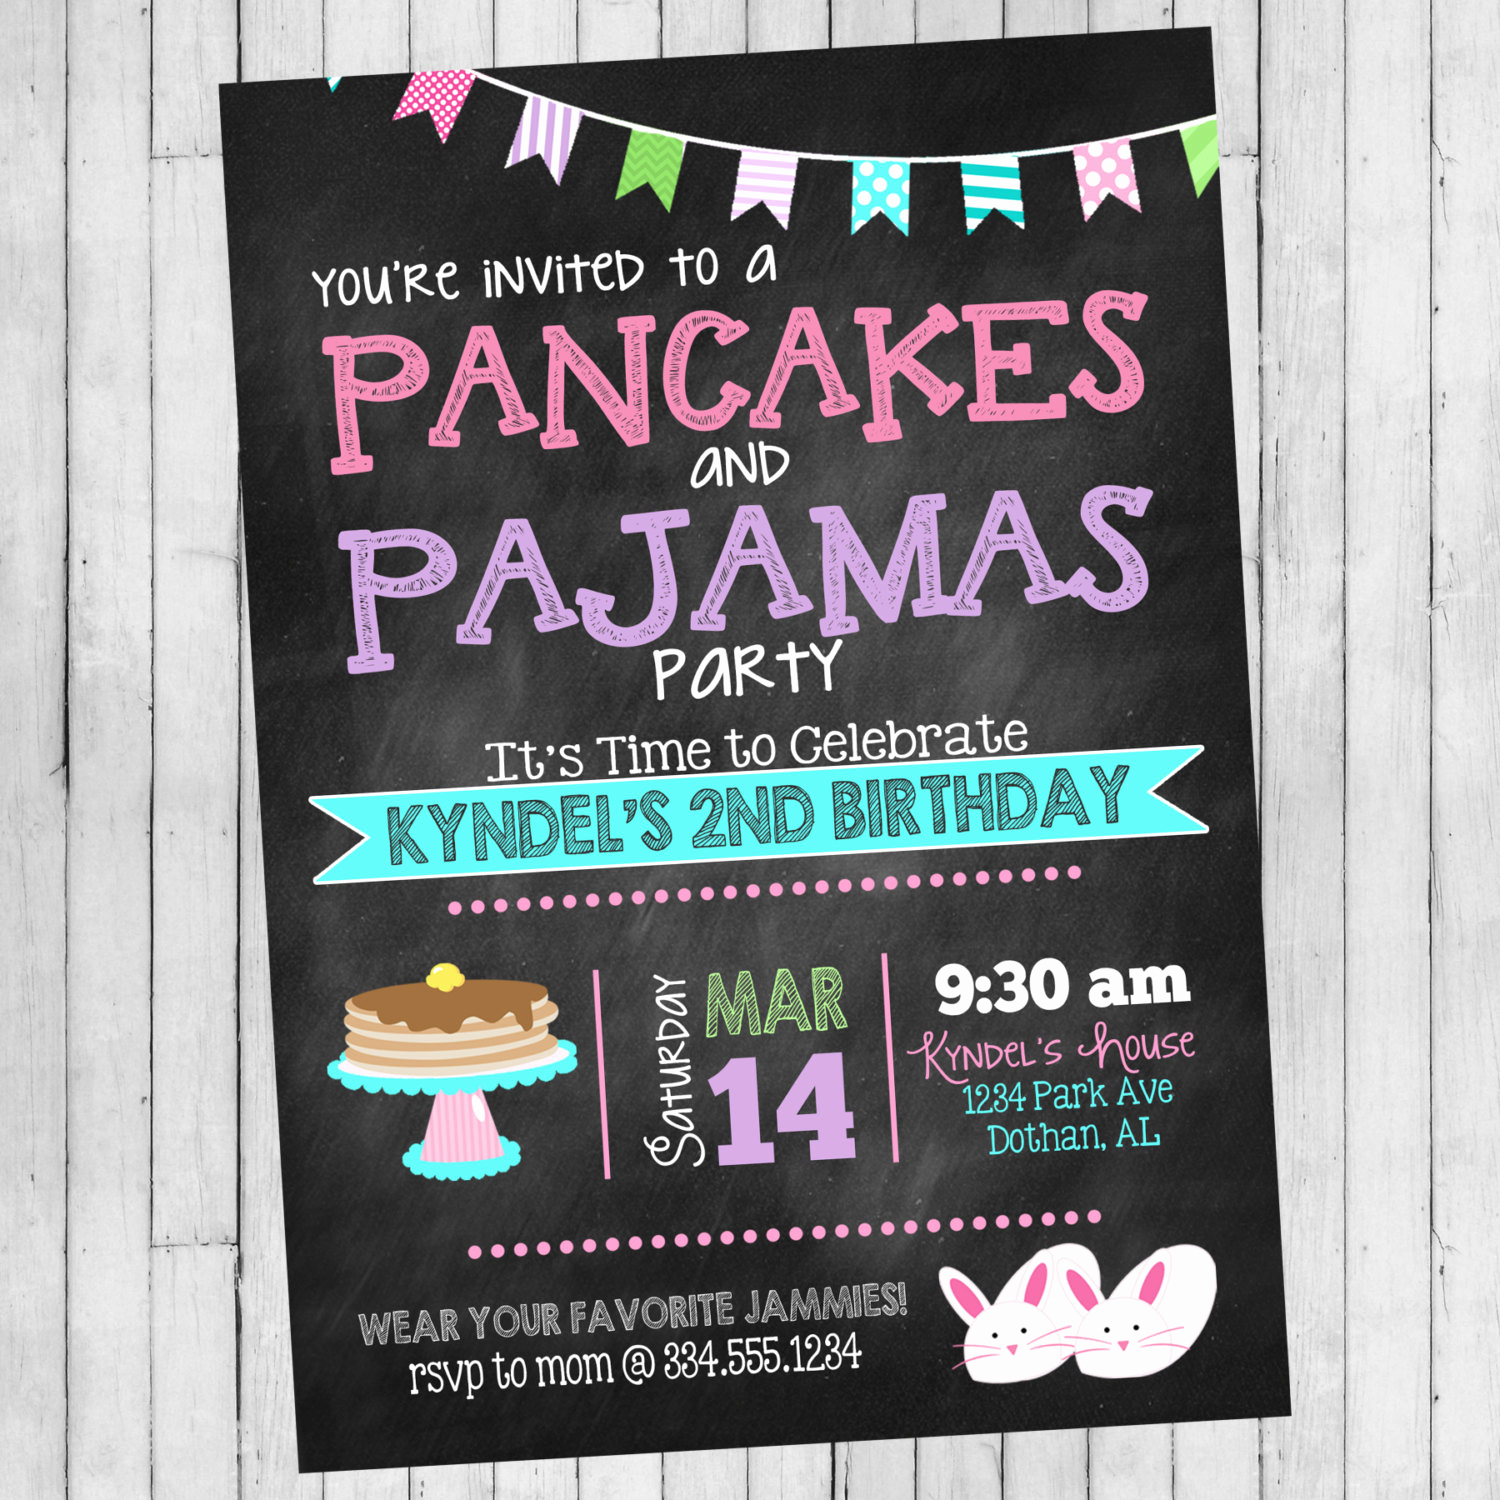 Pancakes and Pajamas Invitation Beautiful Pancakes and Pajamas Birthday Invitation Pancakes and